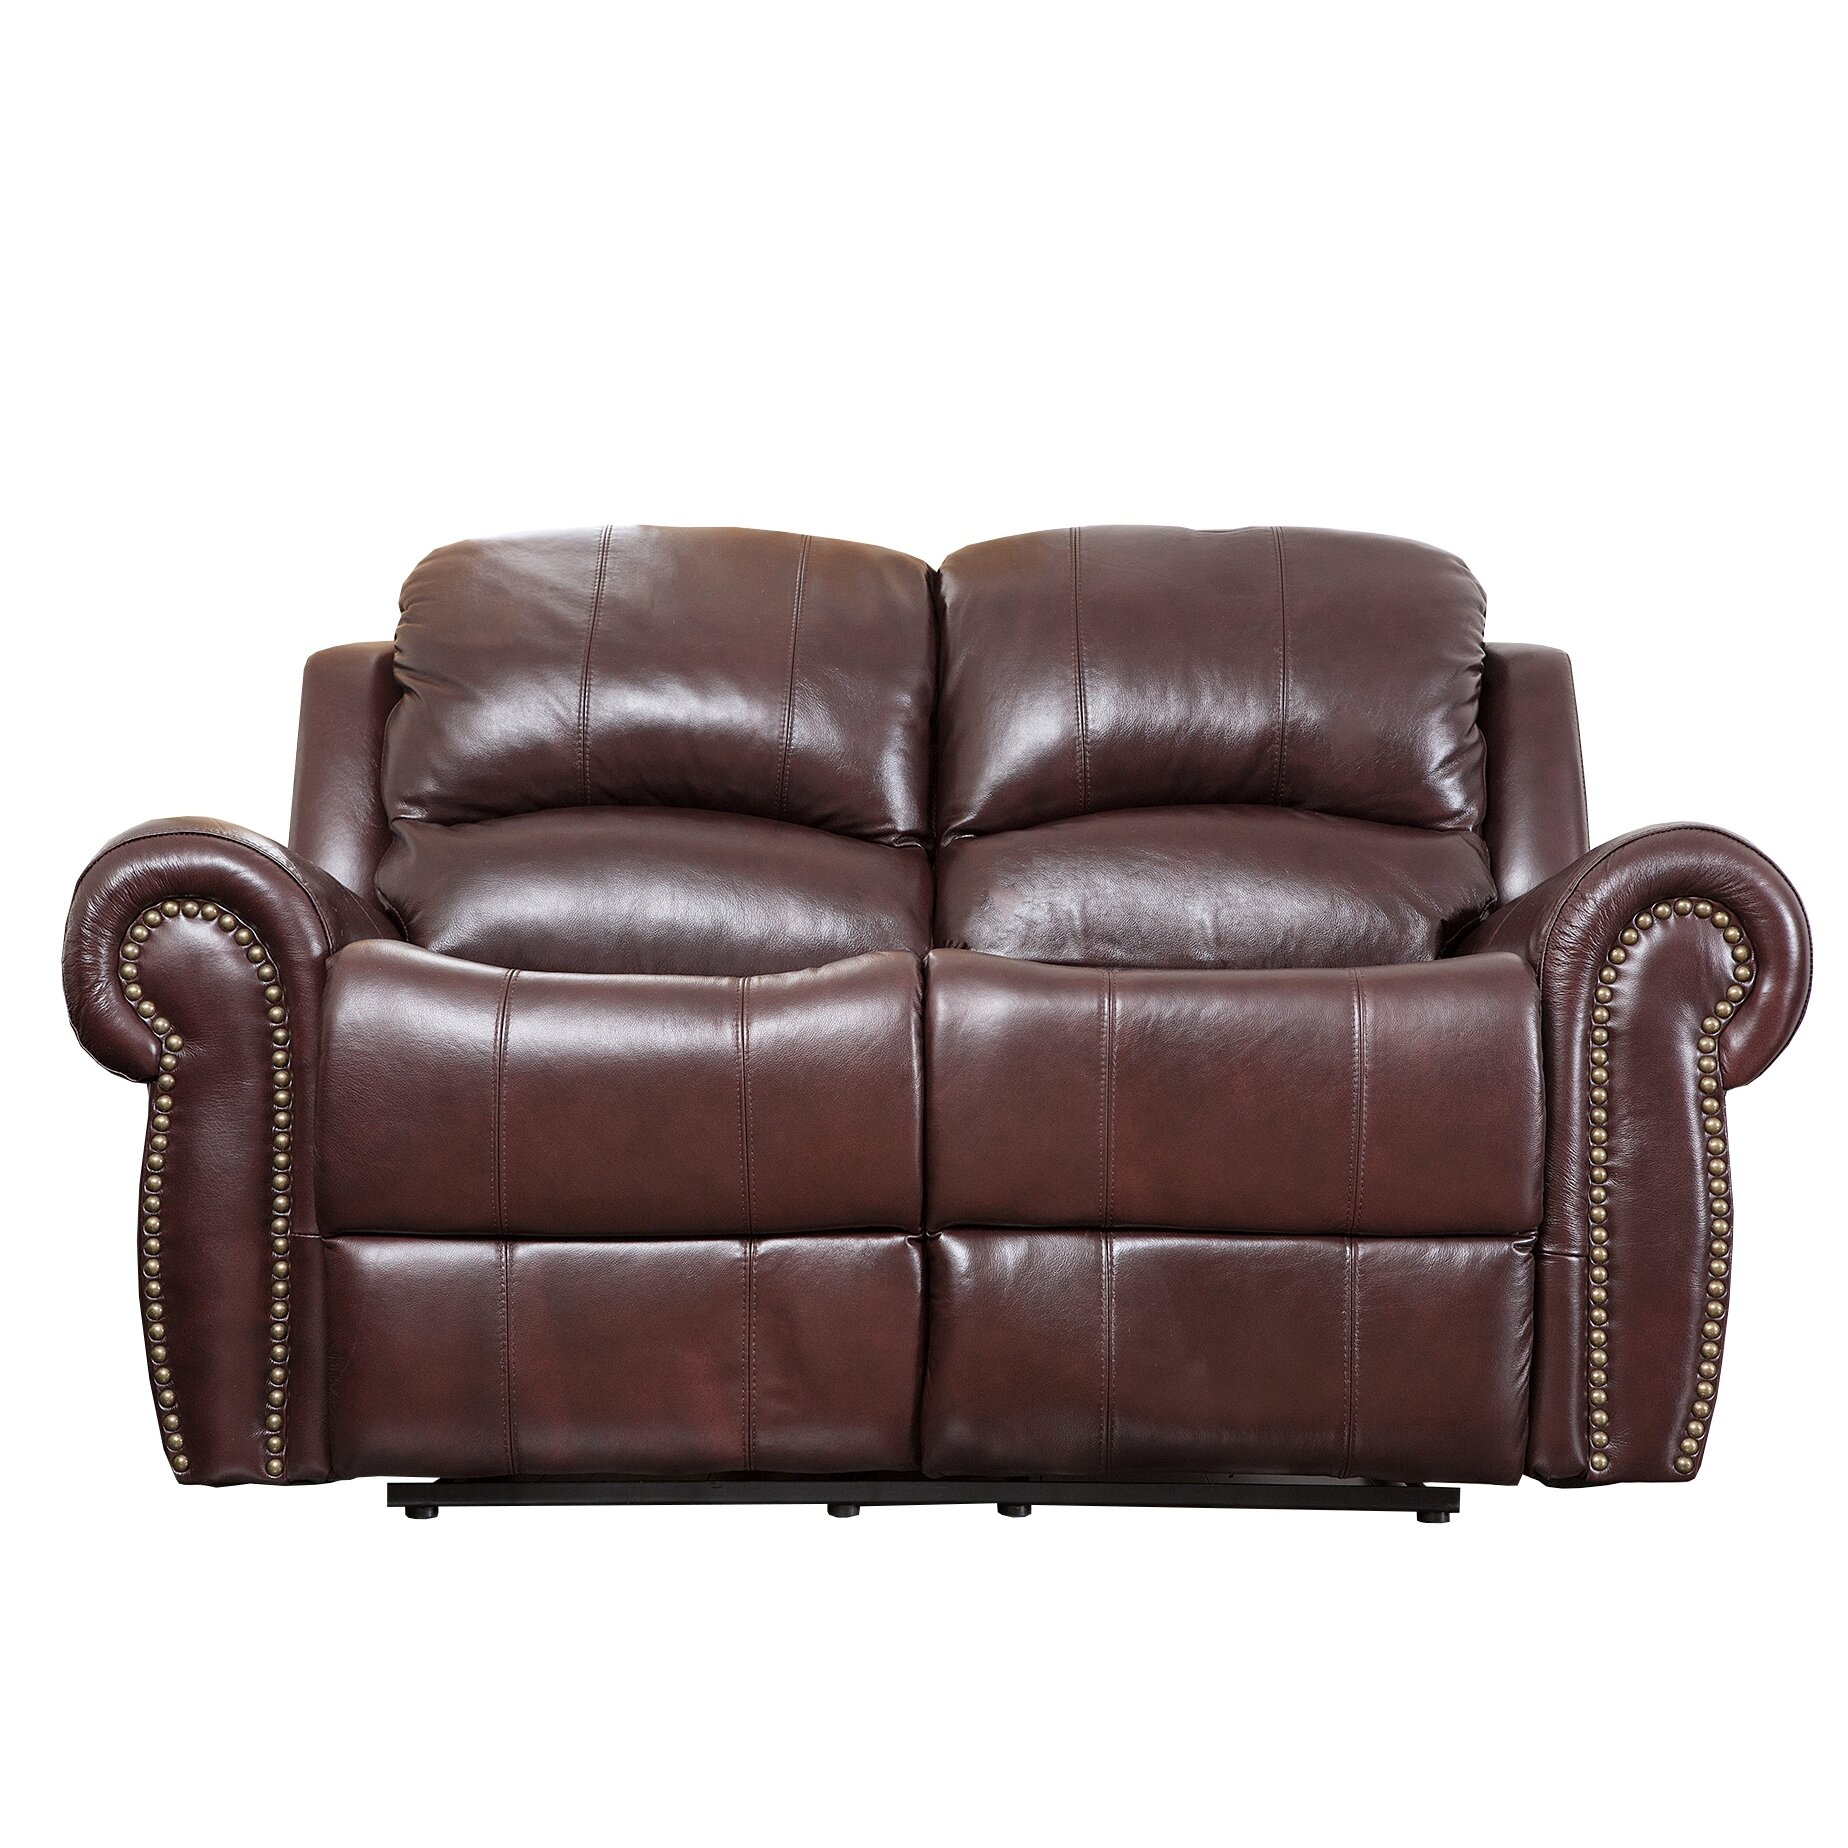 Abbyson living sedona leather reclining loveseat reviews Reclining leather sofa and loveseat